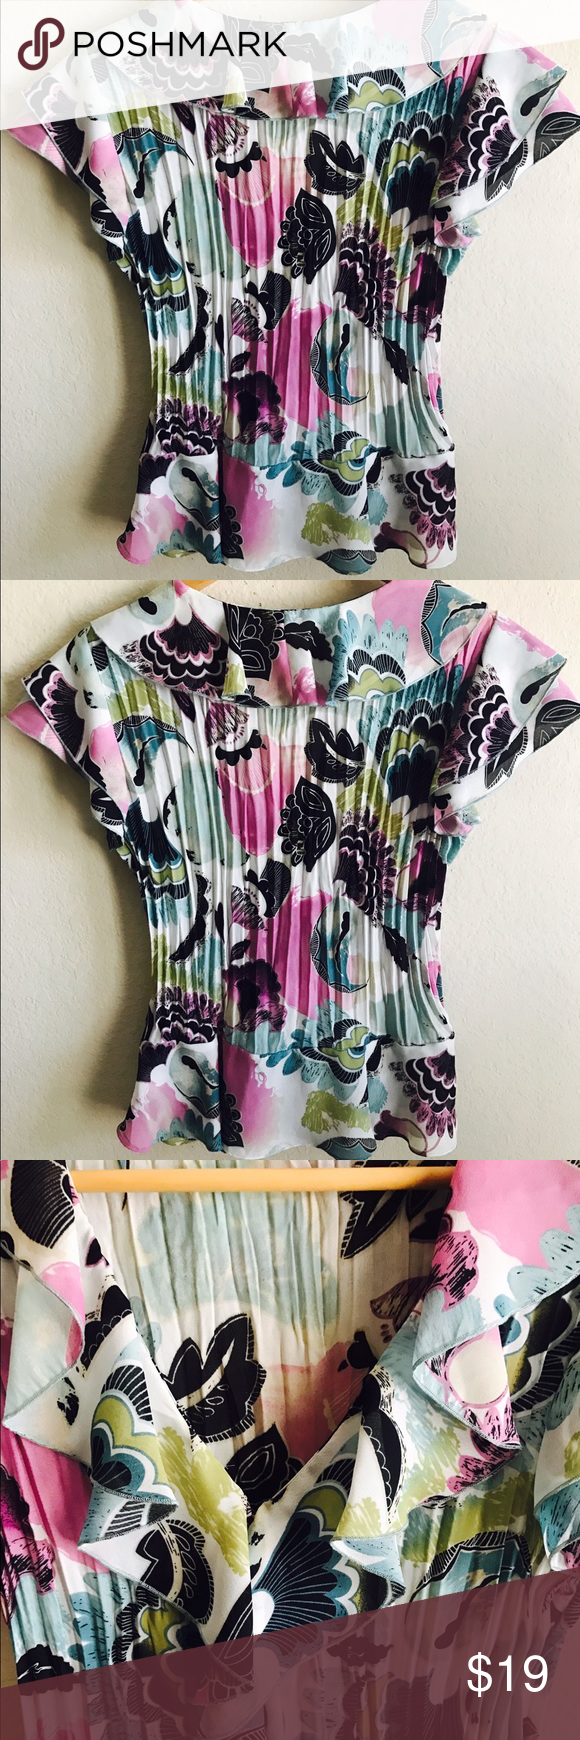 Sunny Leigh Floral Print Colorful  top Small. Sunny Leigh Floral Print Colorful Ruffle Crinkle Top Blouse sz Small.   Measurements:  Underarm to underarm: 19 Inches Length: 23 Inches   Thank you for visiting us, Please take a look at our other great items! Sunny Leigh Tops Button Down Shirts